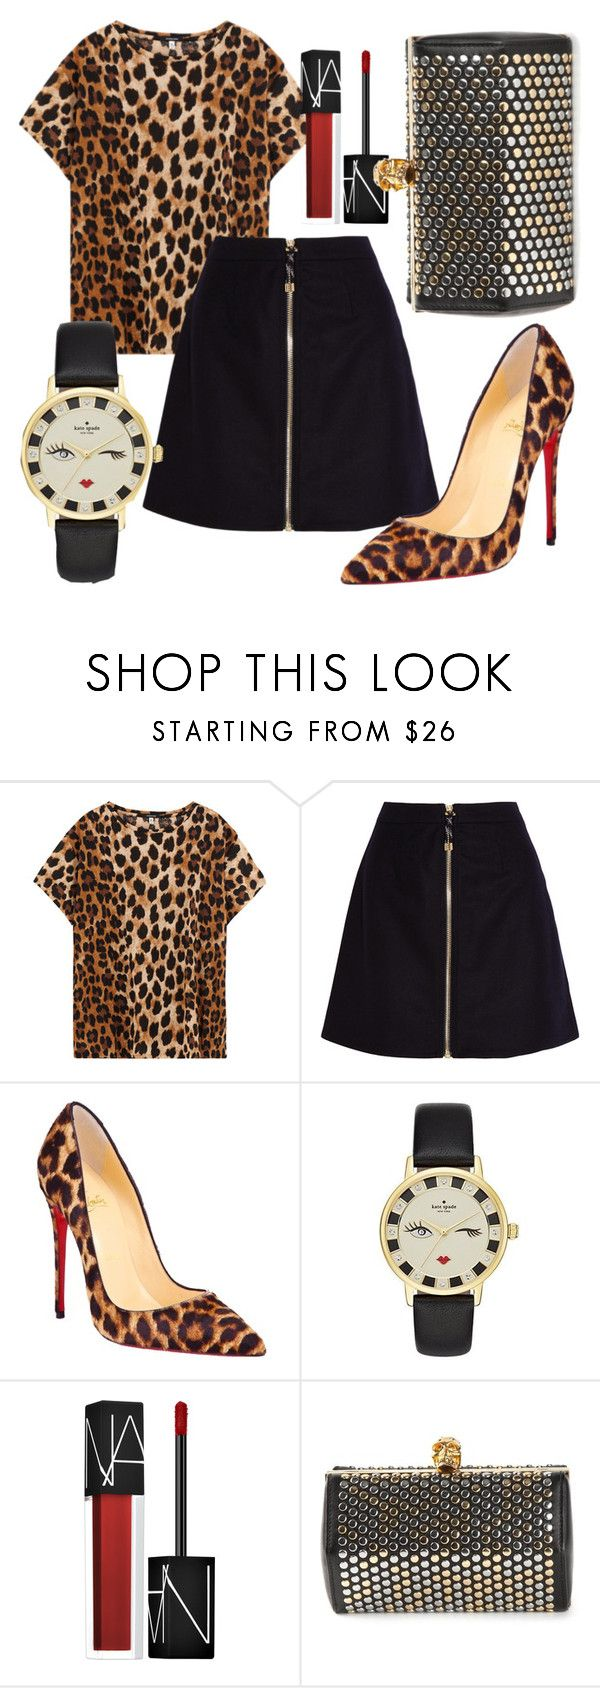 """""""Huntress on the Prowl"""" by fashionforwarded ❤ liked on Polyvore featuring R13, Acne Studios, Christian Louboutin, Kate Spade, NARS Cosmetics and Alexander McQueen"""